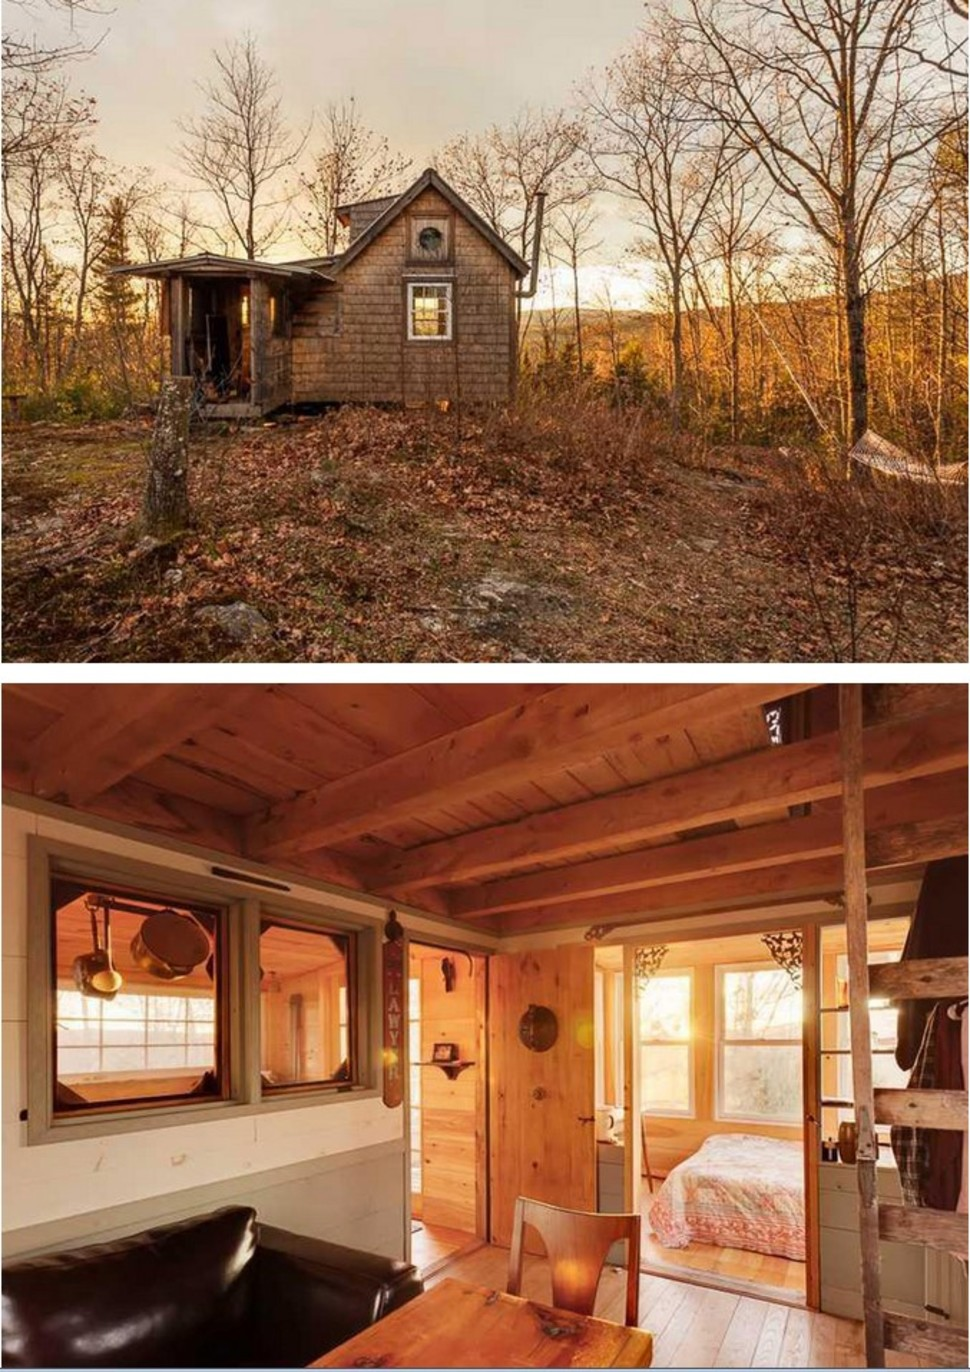 AD-Brilliant-Tiny-Homes-That-Will-Inspire-You-To-Live-Small-15